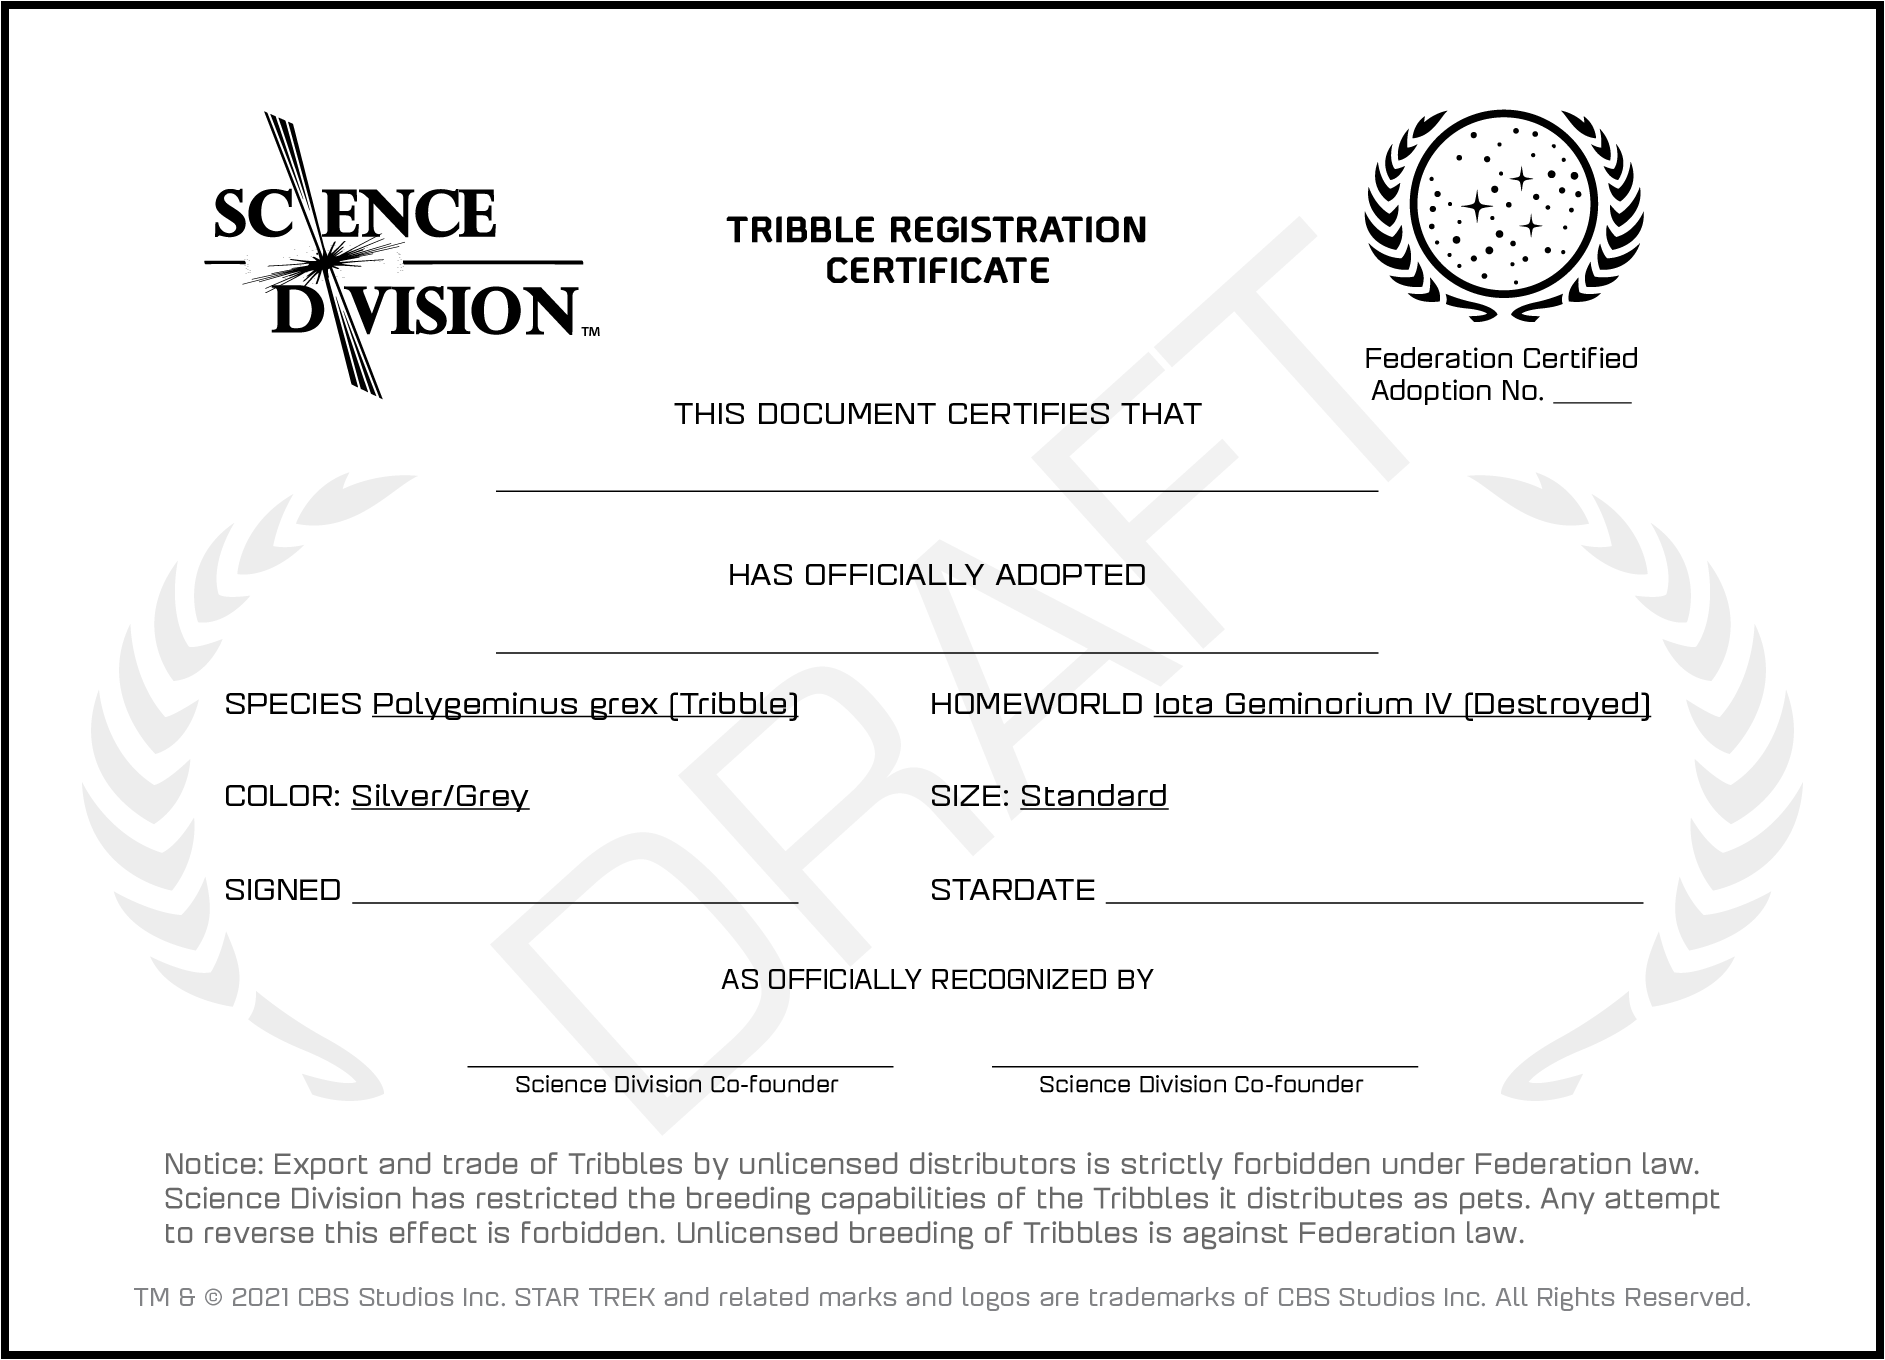 A draft image of a Tribble adoption certificate